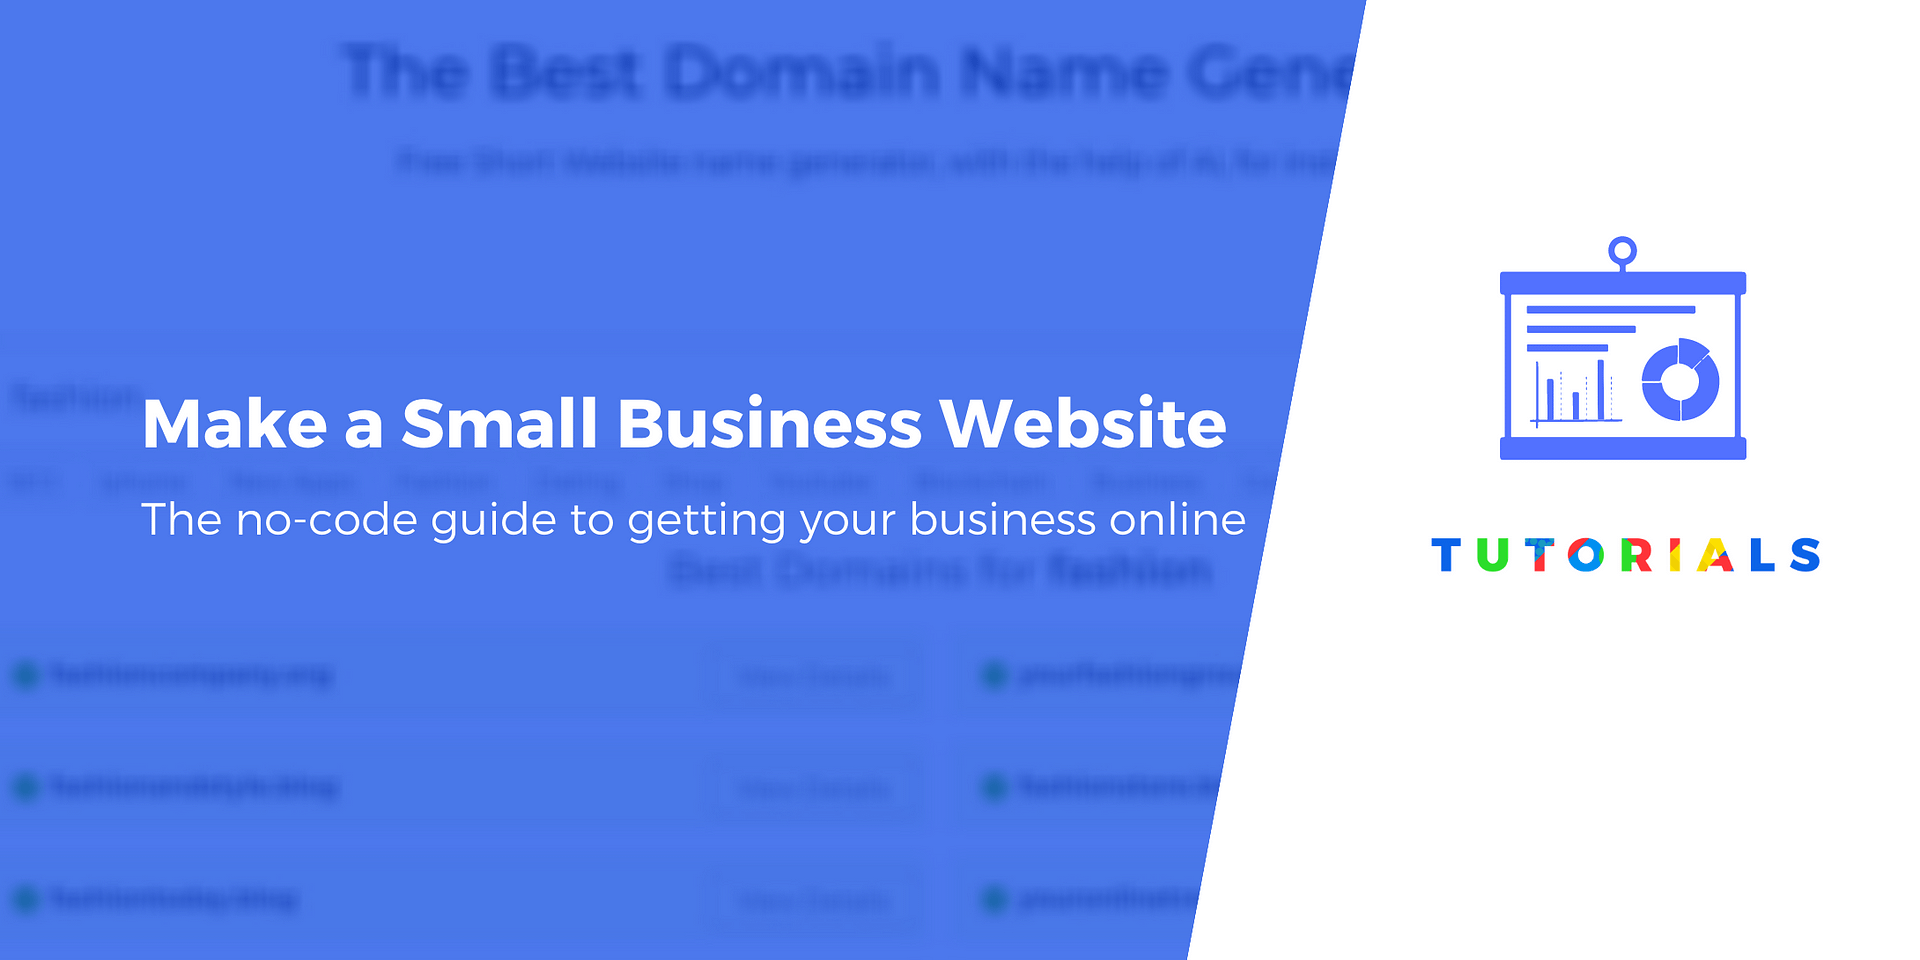 How To Make A Small Business Website